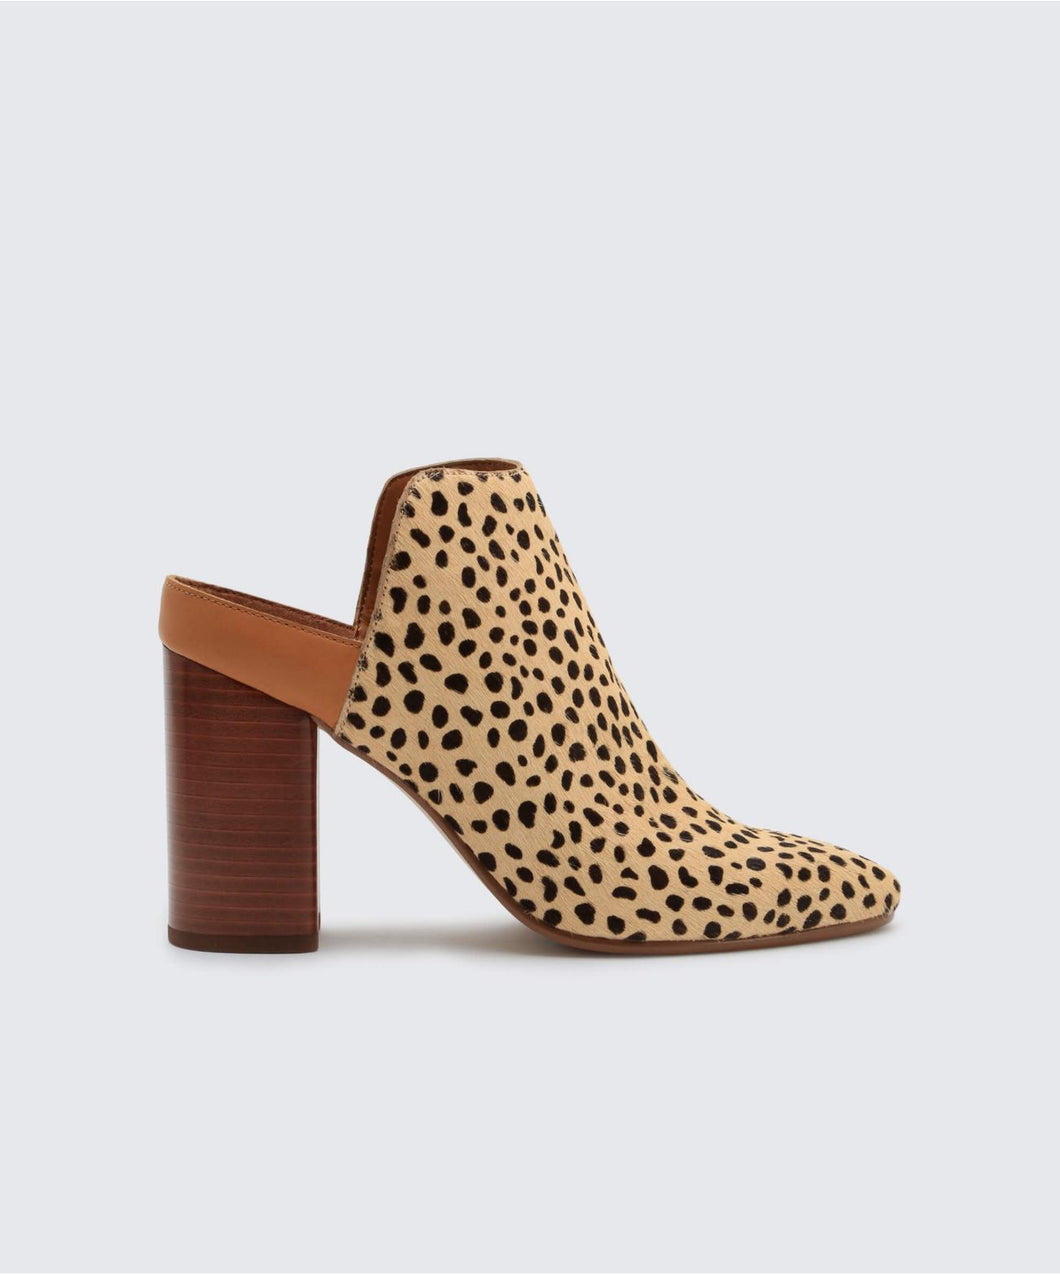 RENLY BOOTIES IN LEOPARD -   Dolce Vita